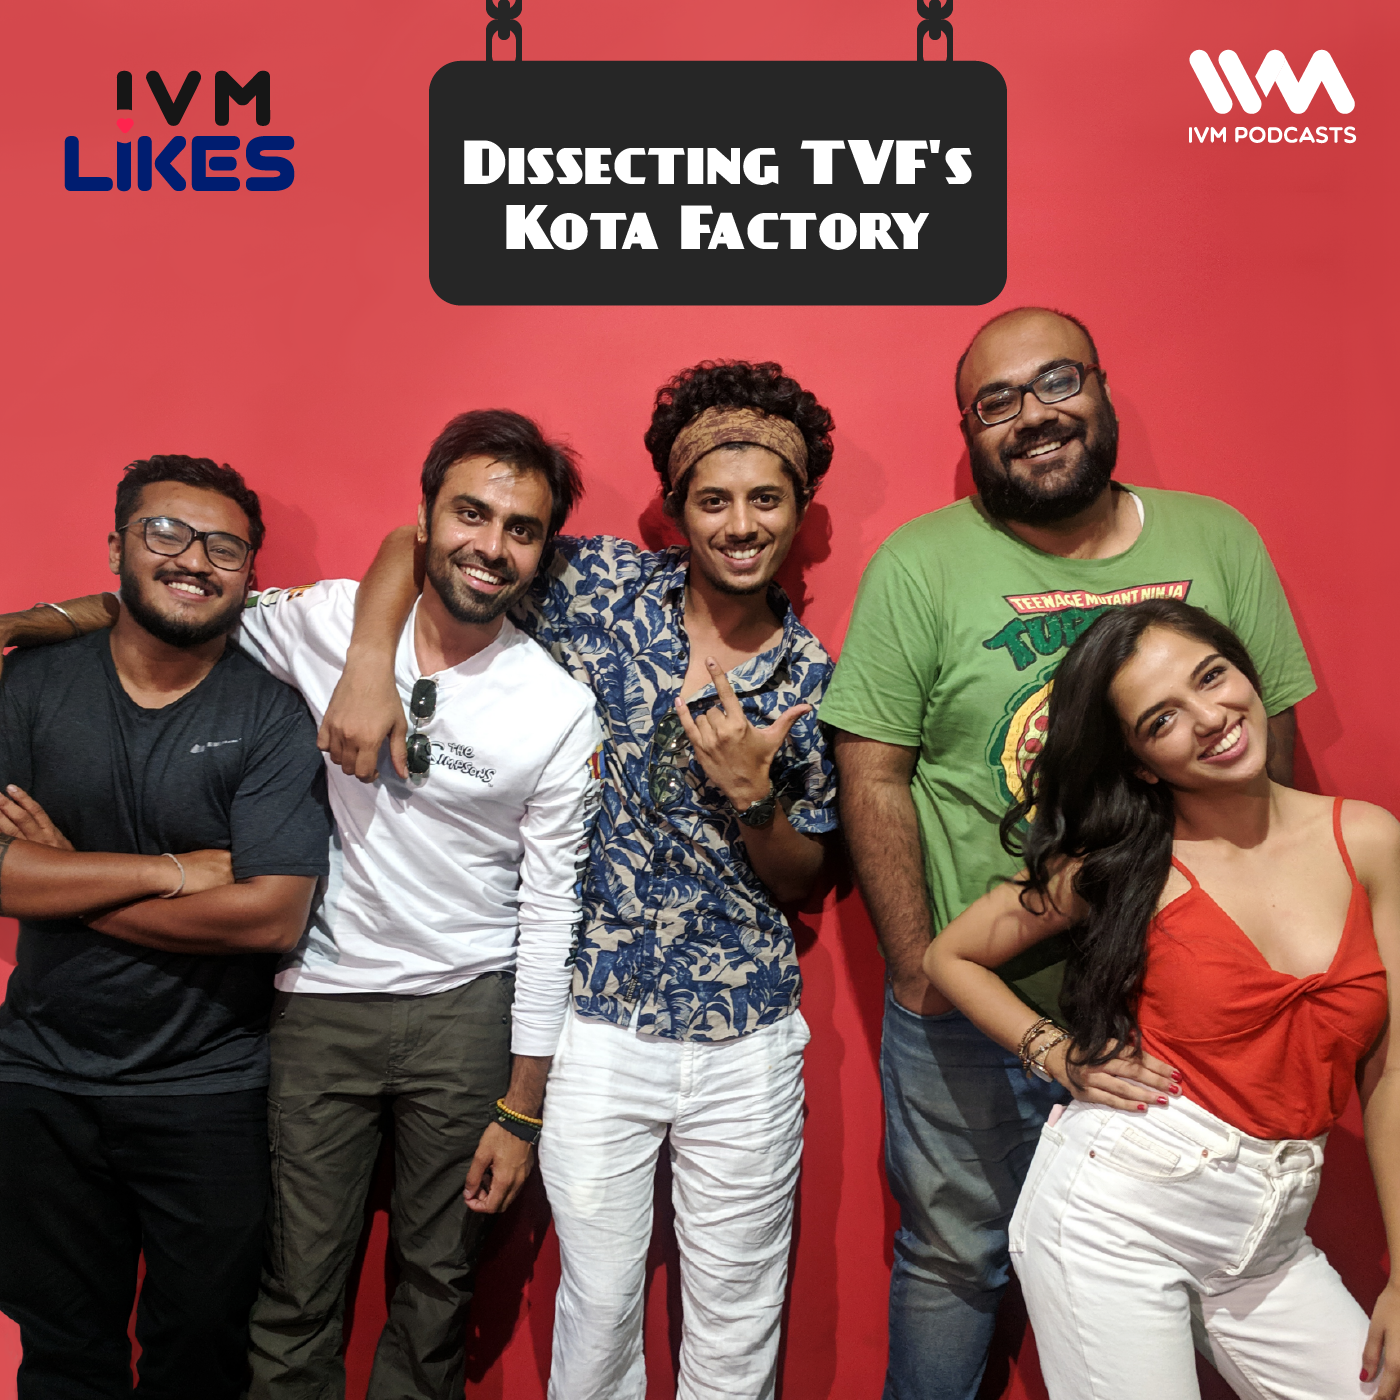 Ep. 121: Dissecting TVF's Kota Factory